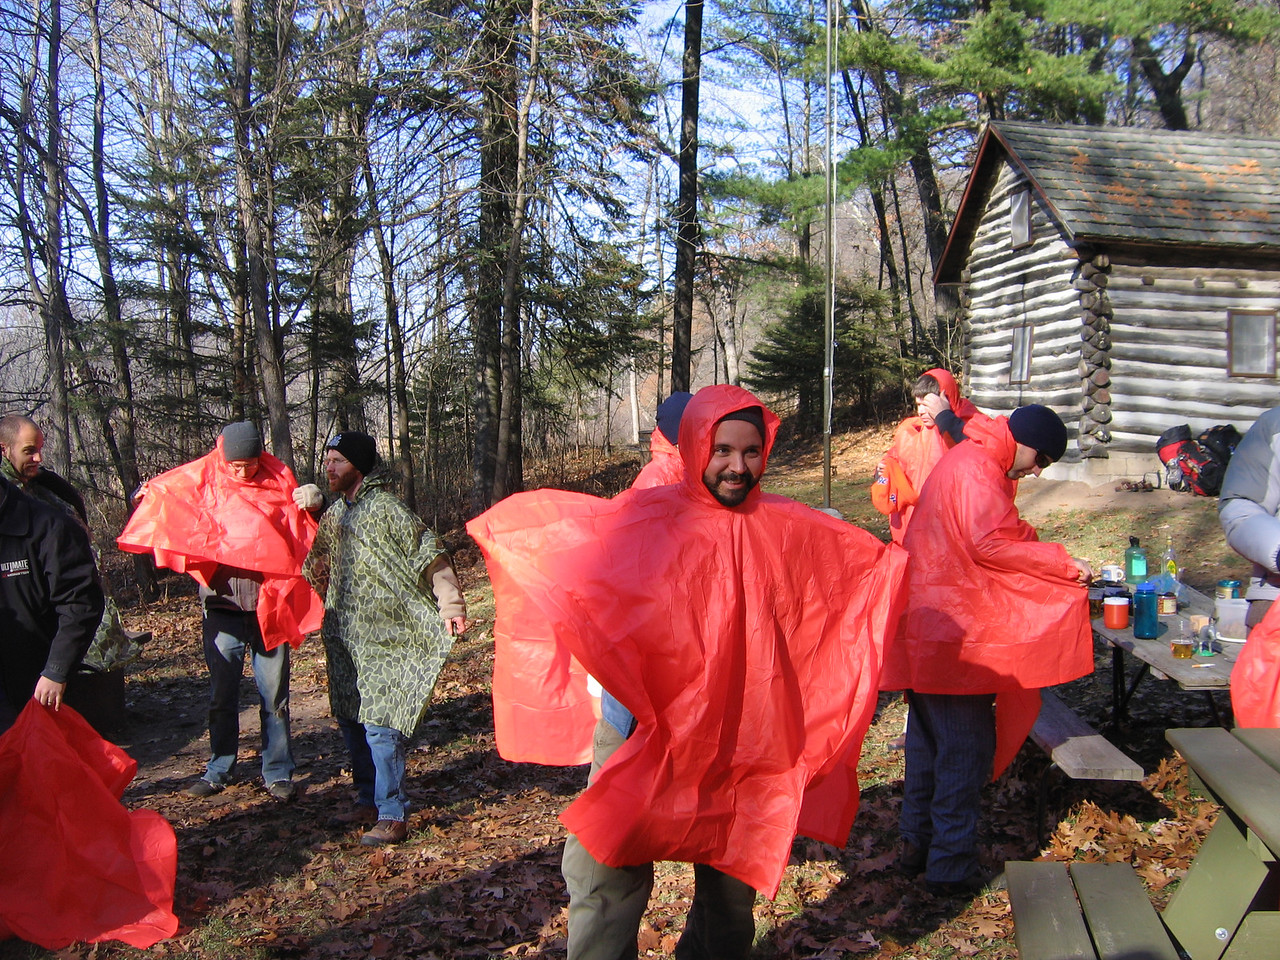 But the fun and games need to be put on hold for a while,  and the orange ponchos were donned for the burial service.